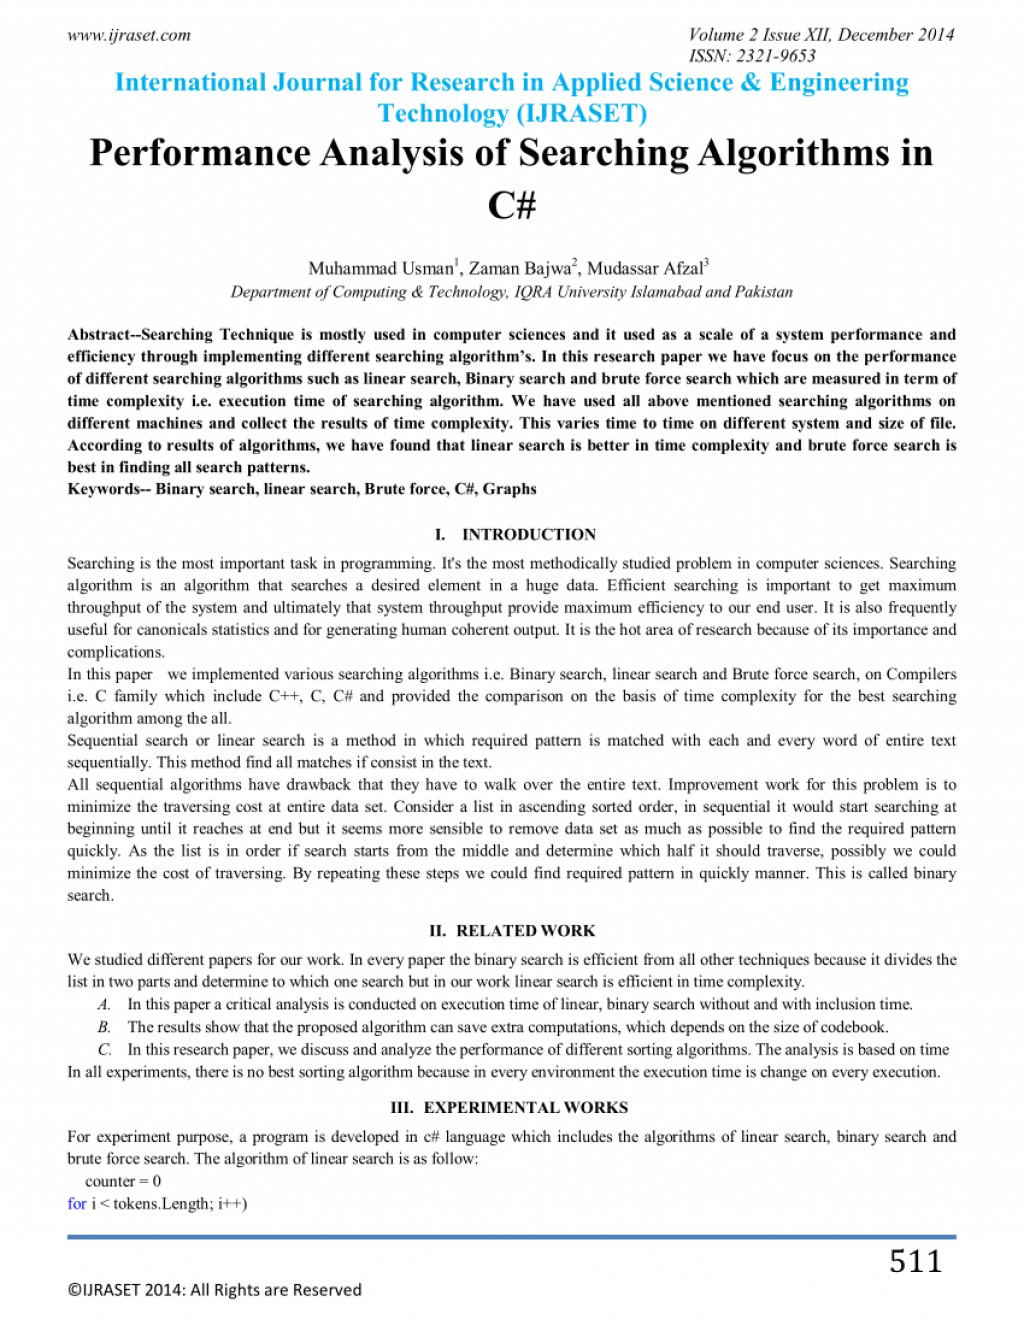 002 Research Paper Binary Search Algorithm Papers Frightening Large